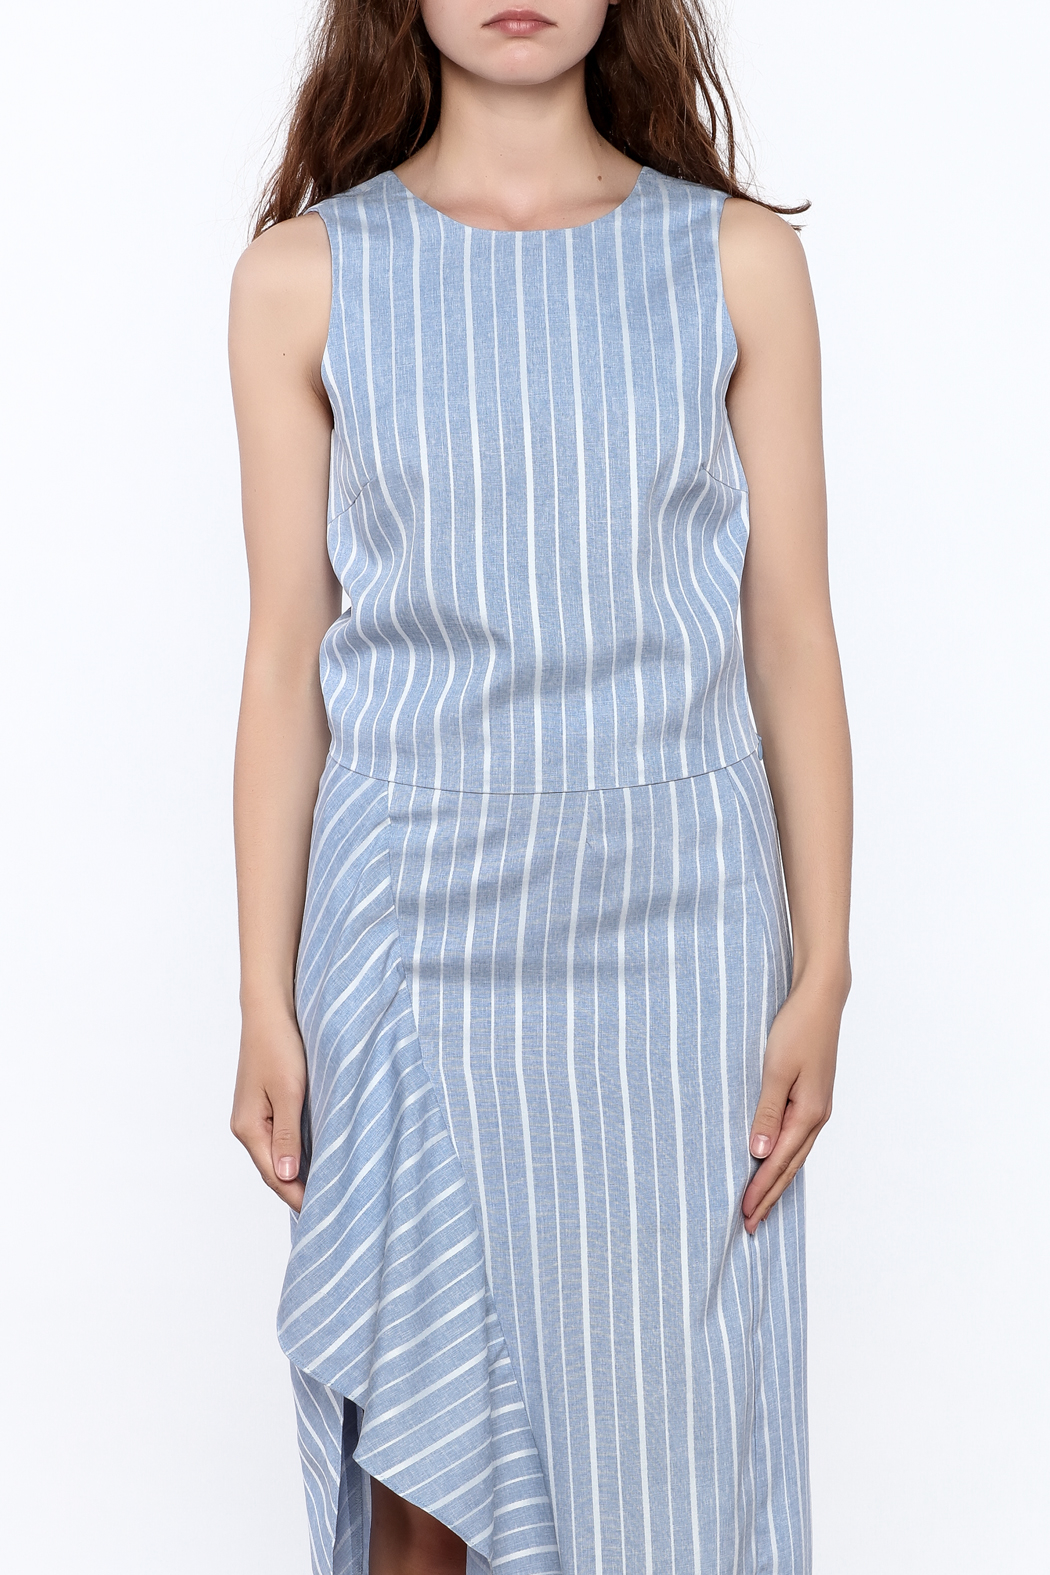 Jenn Blue Stripe Print Top - Side Cropped Image